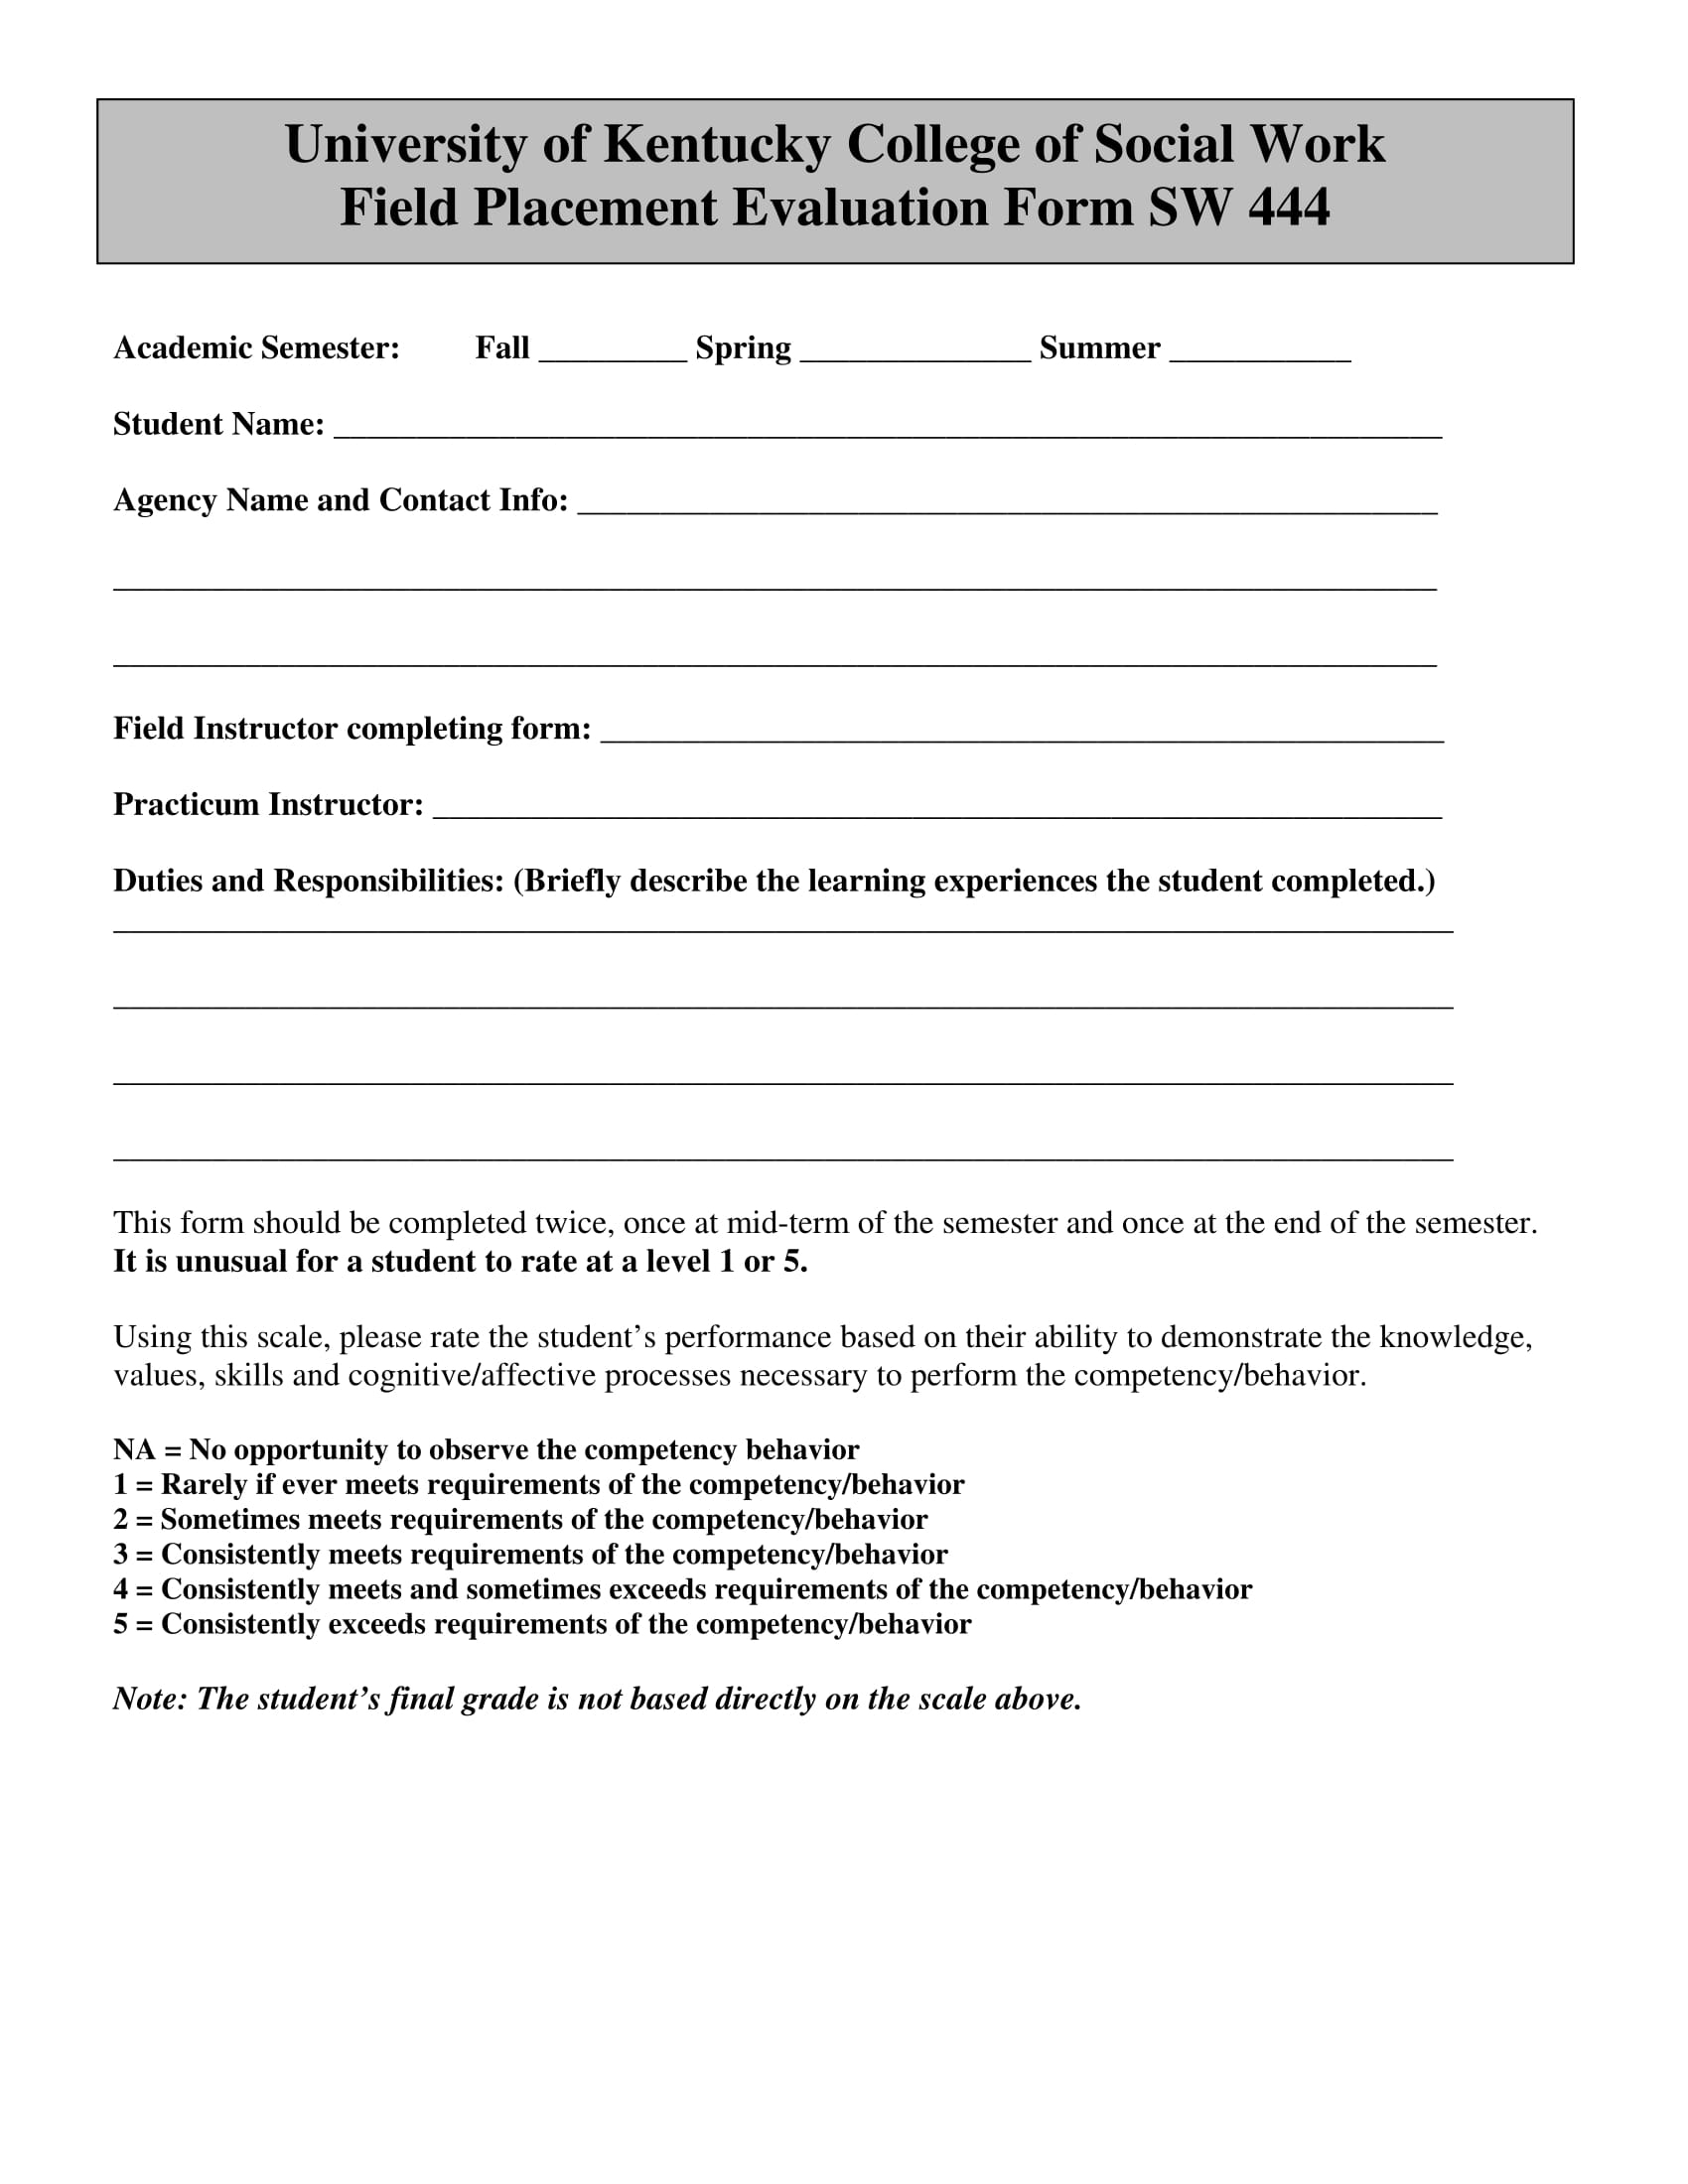 field placement evaluation form 1